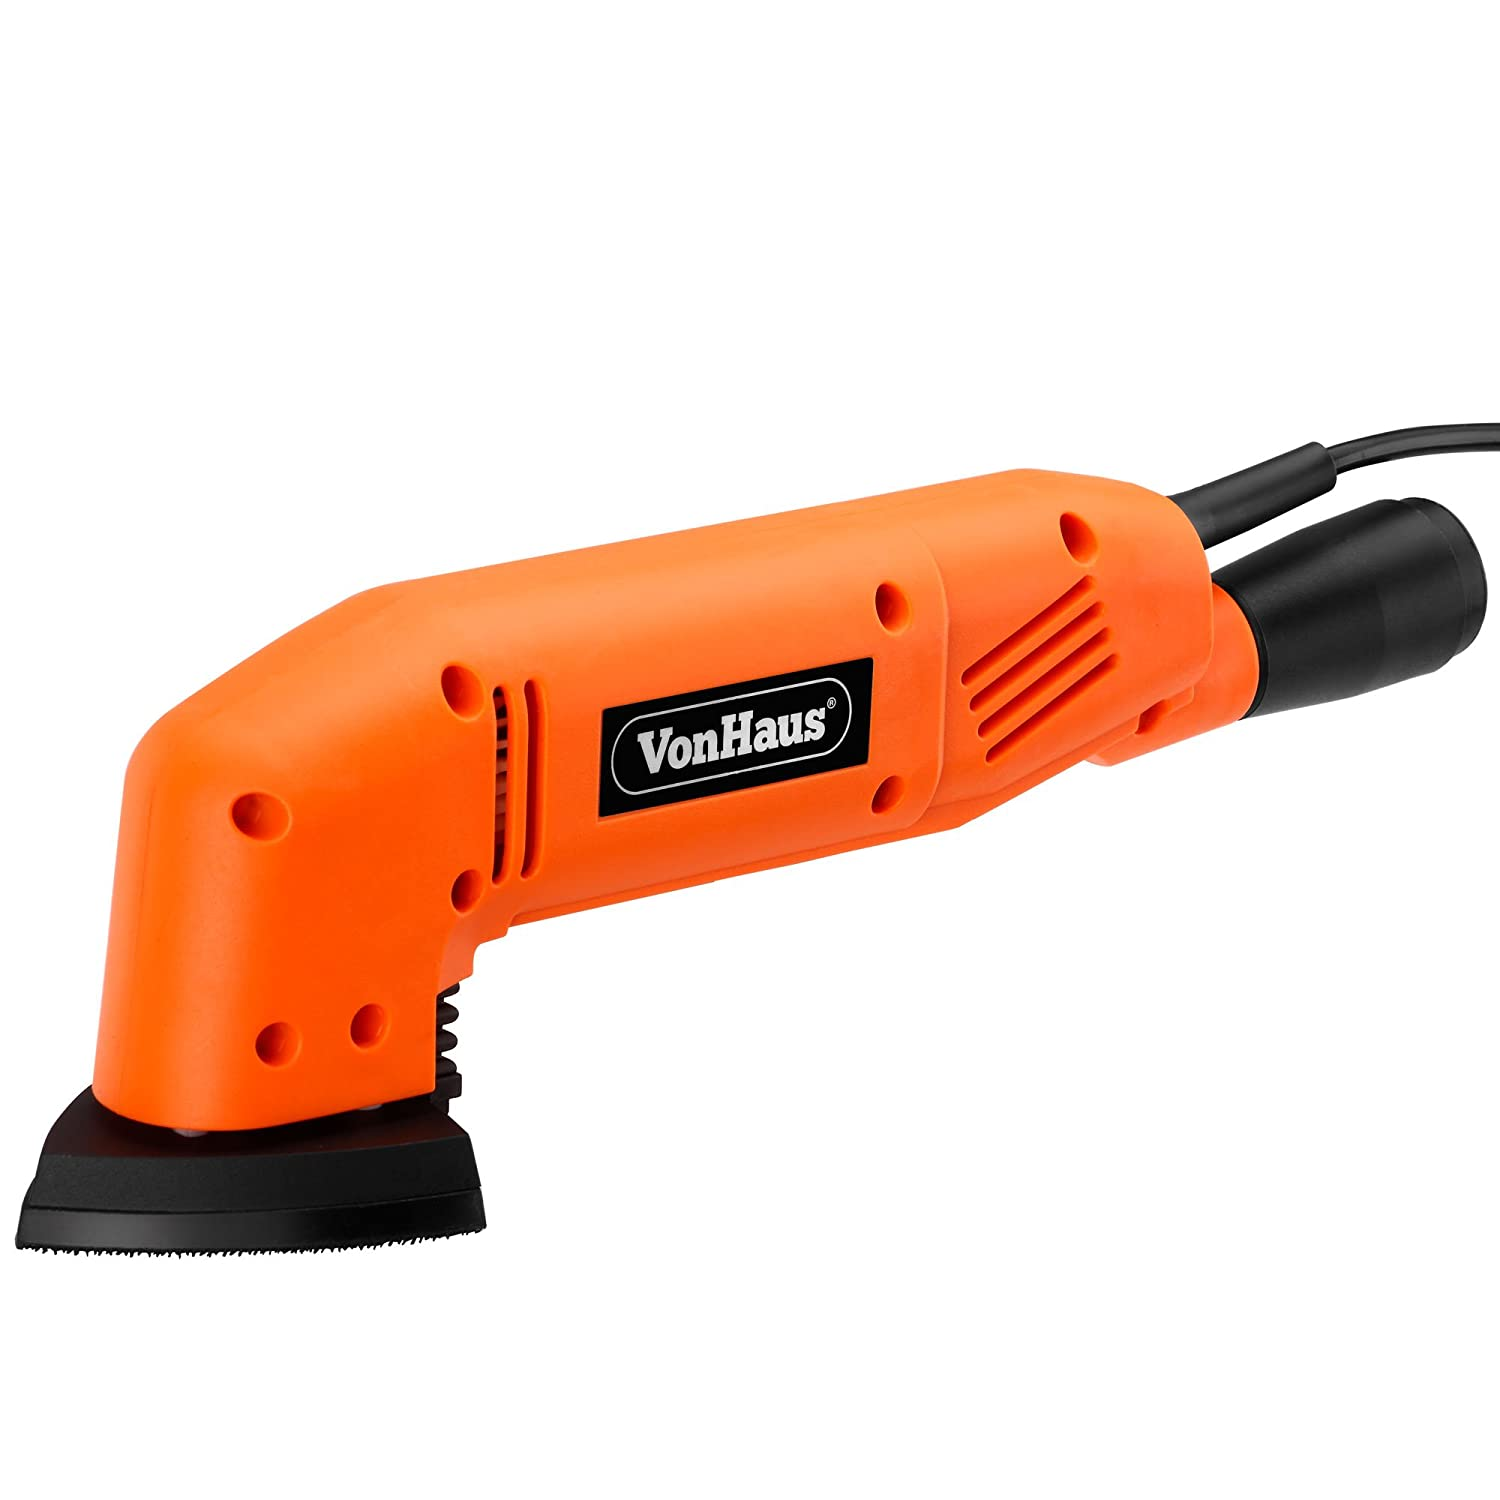 vonhaus w mm triangle detail sander with  sanding sheets amp dust extraction: decor uk accslx x